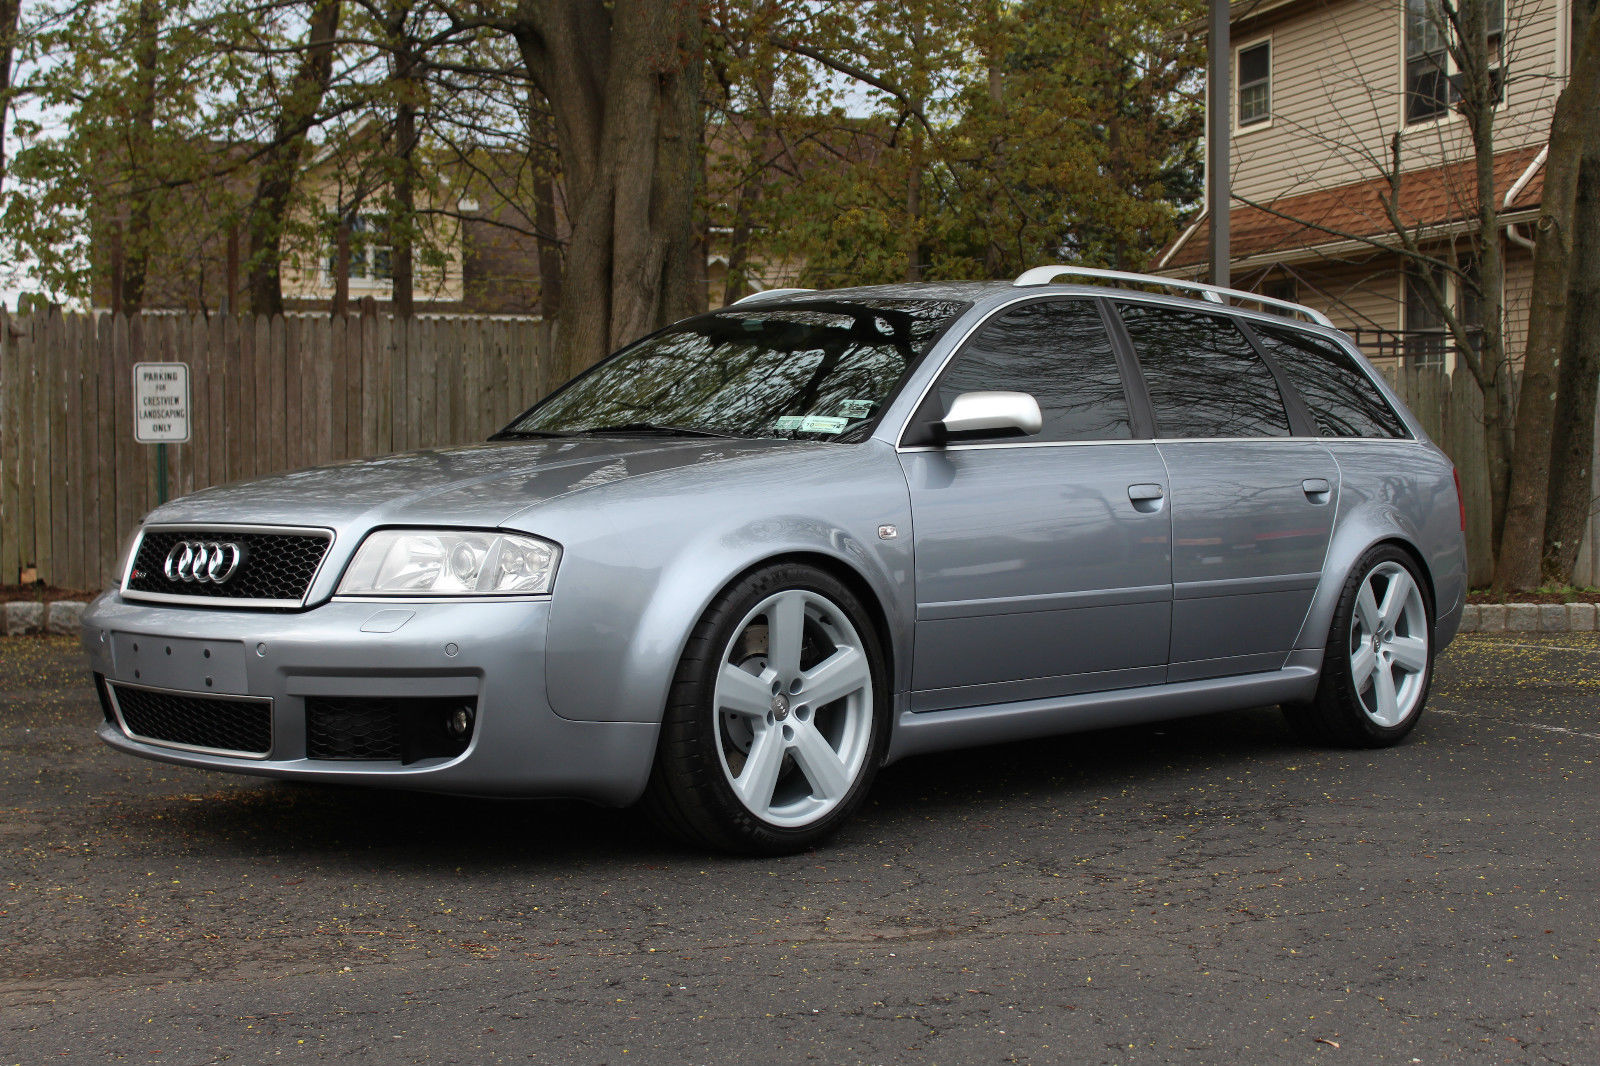 paul walker 39 s old audi rs6 for sale gtspirit. Black Bedroom Furniture Sets. Home Design Ideas